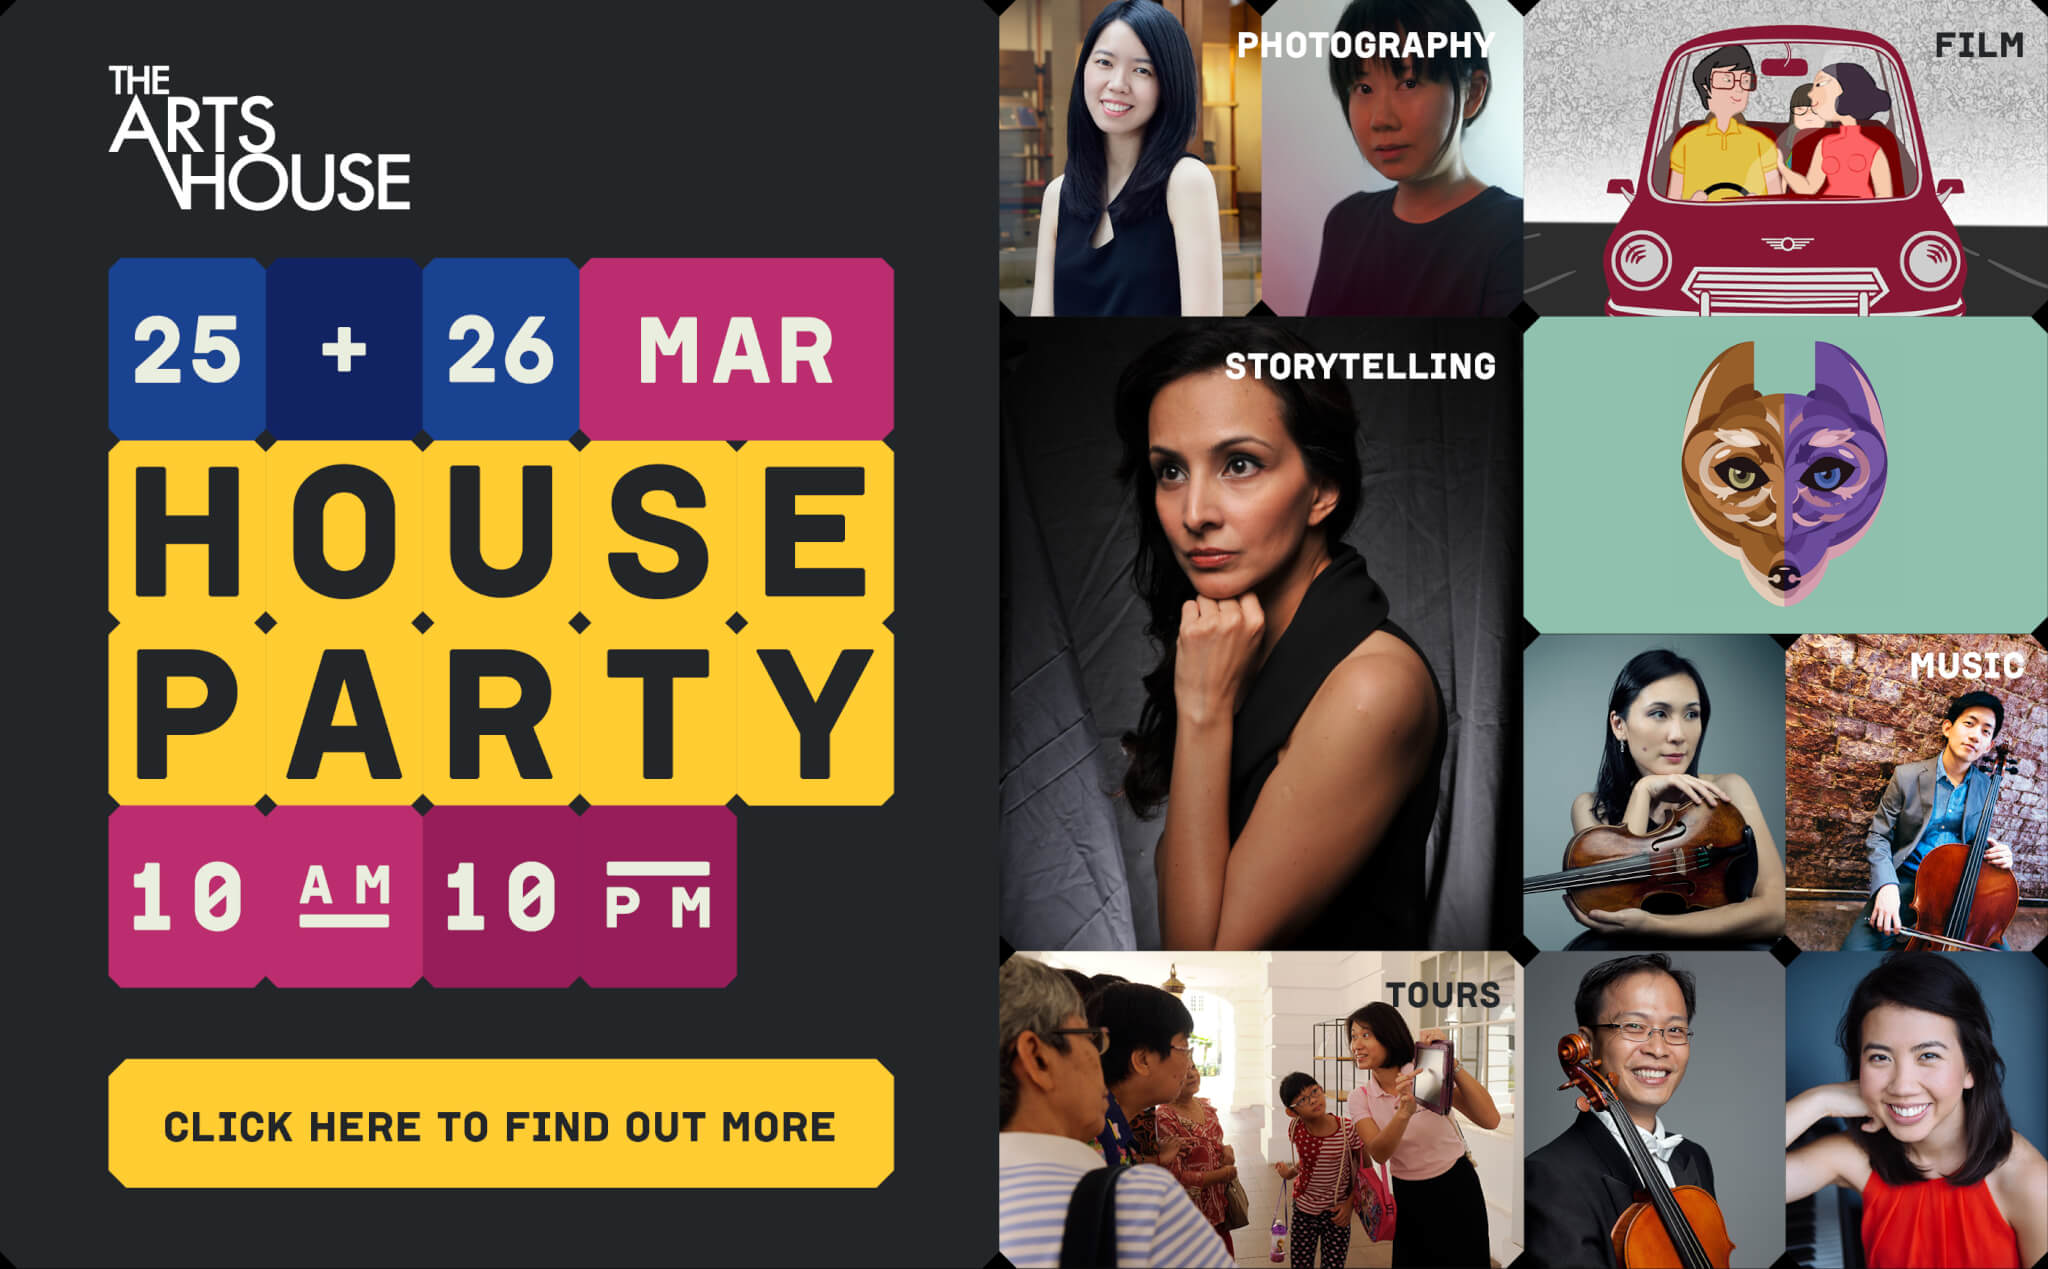 The Arts House's House Party 2017